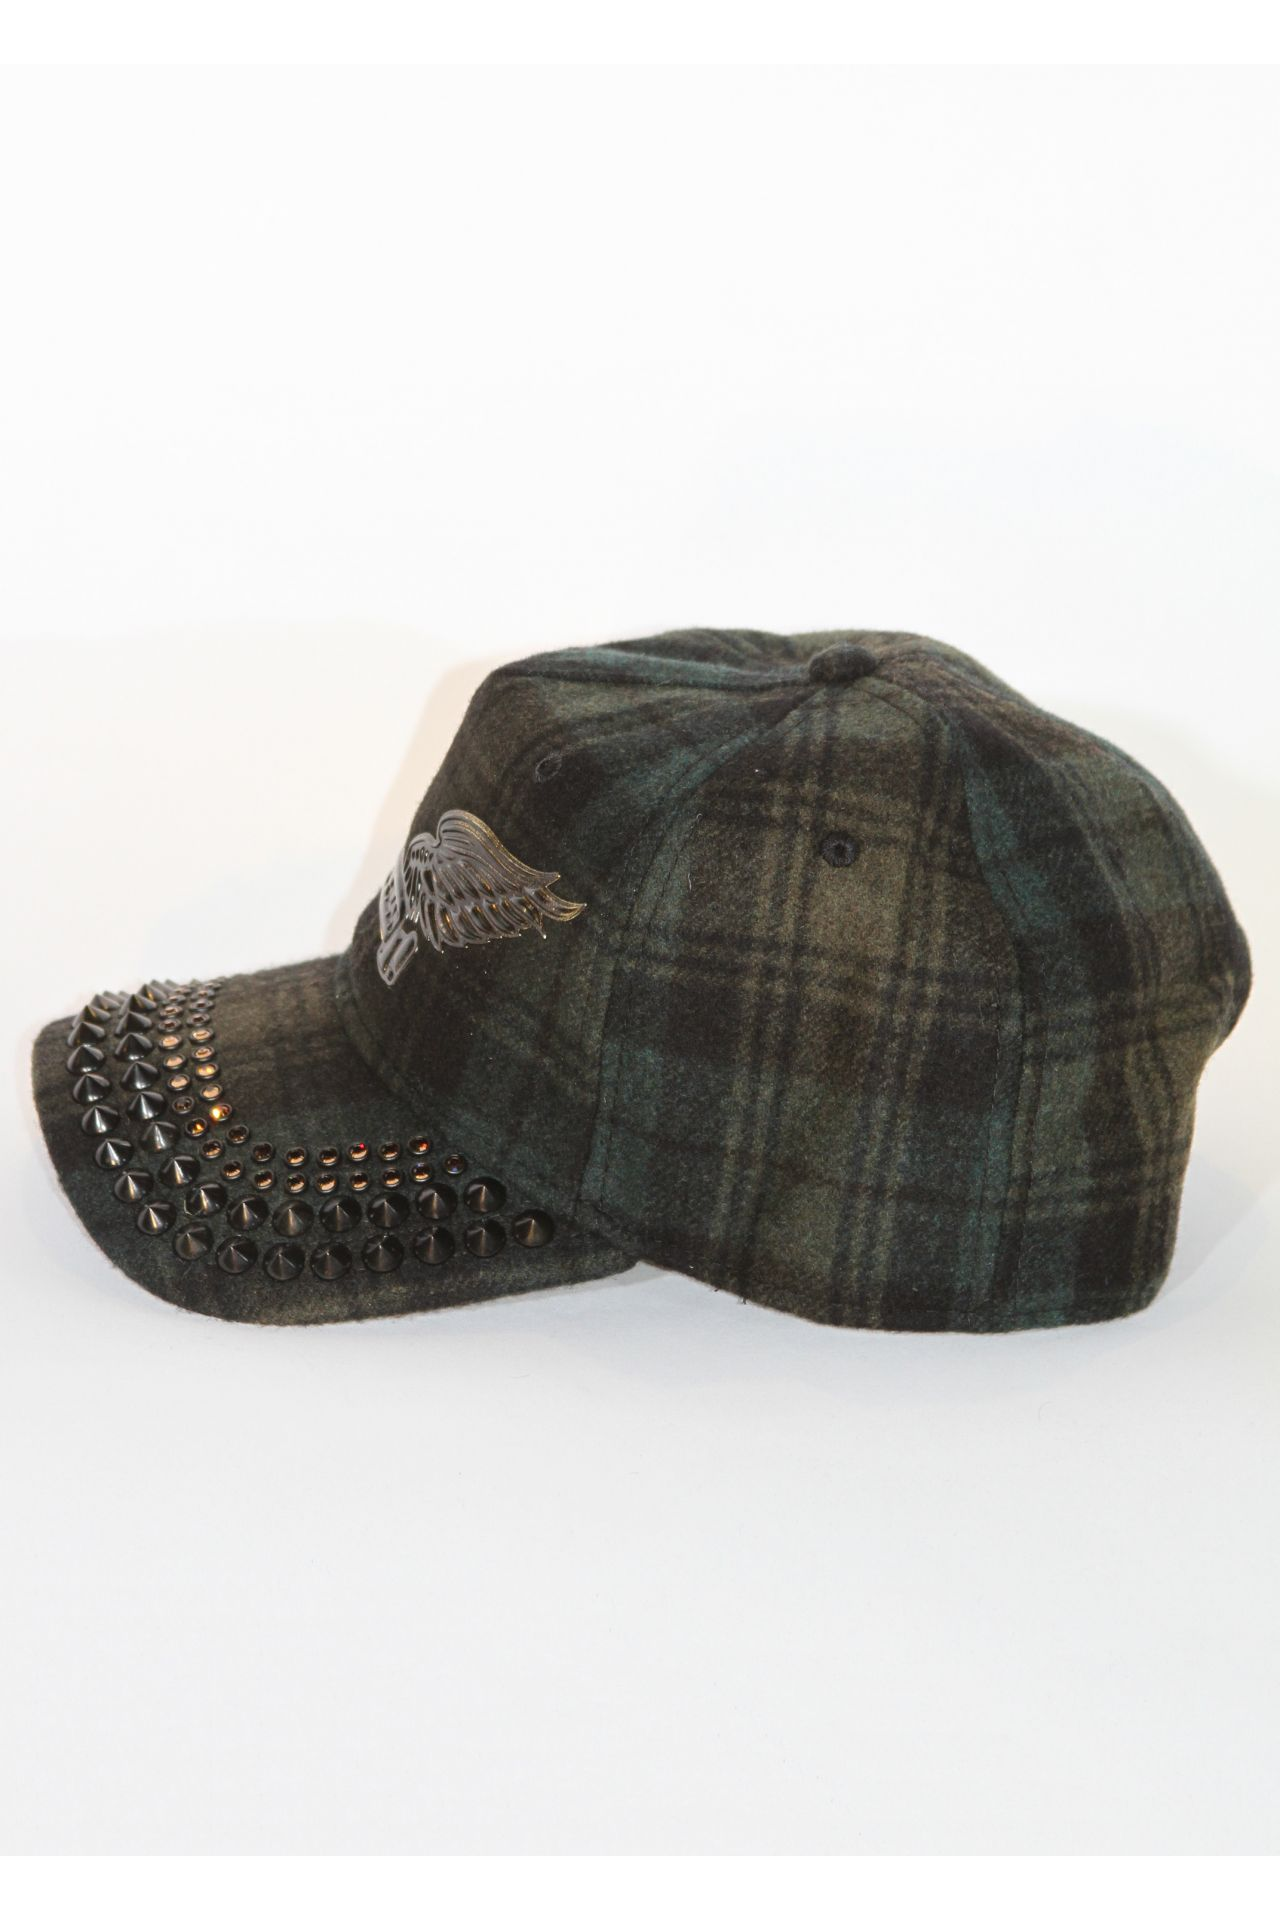 GREEN CAP WITH BLACK DIAMOND SW AND SPIKES